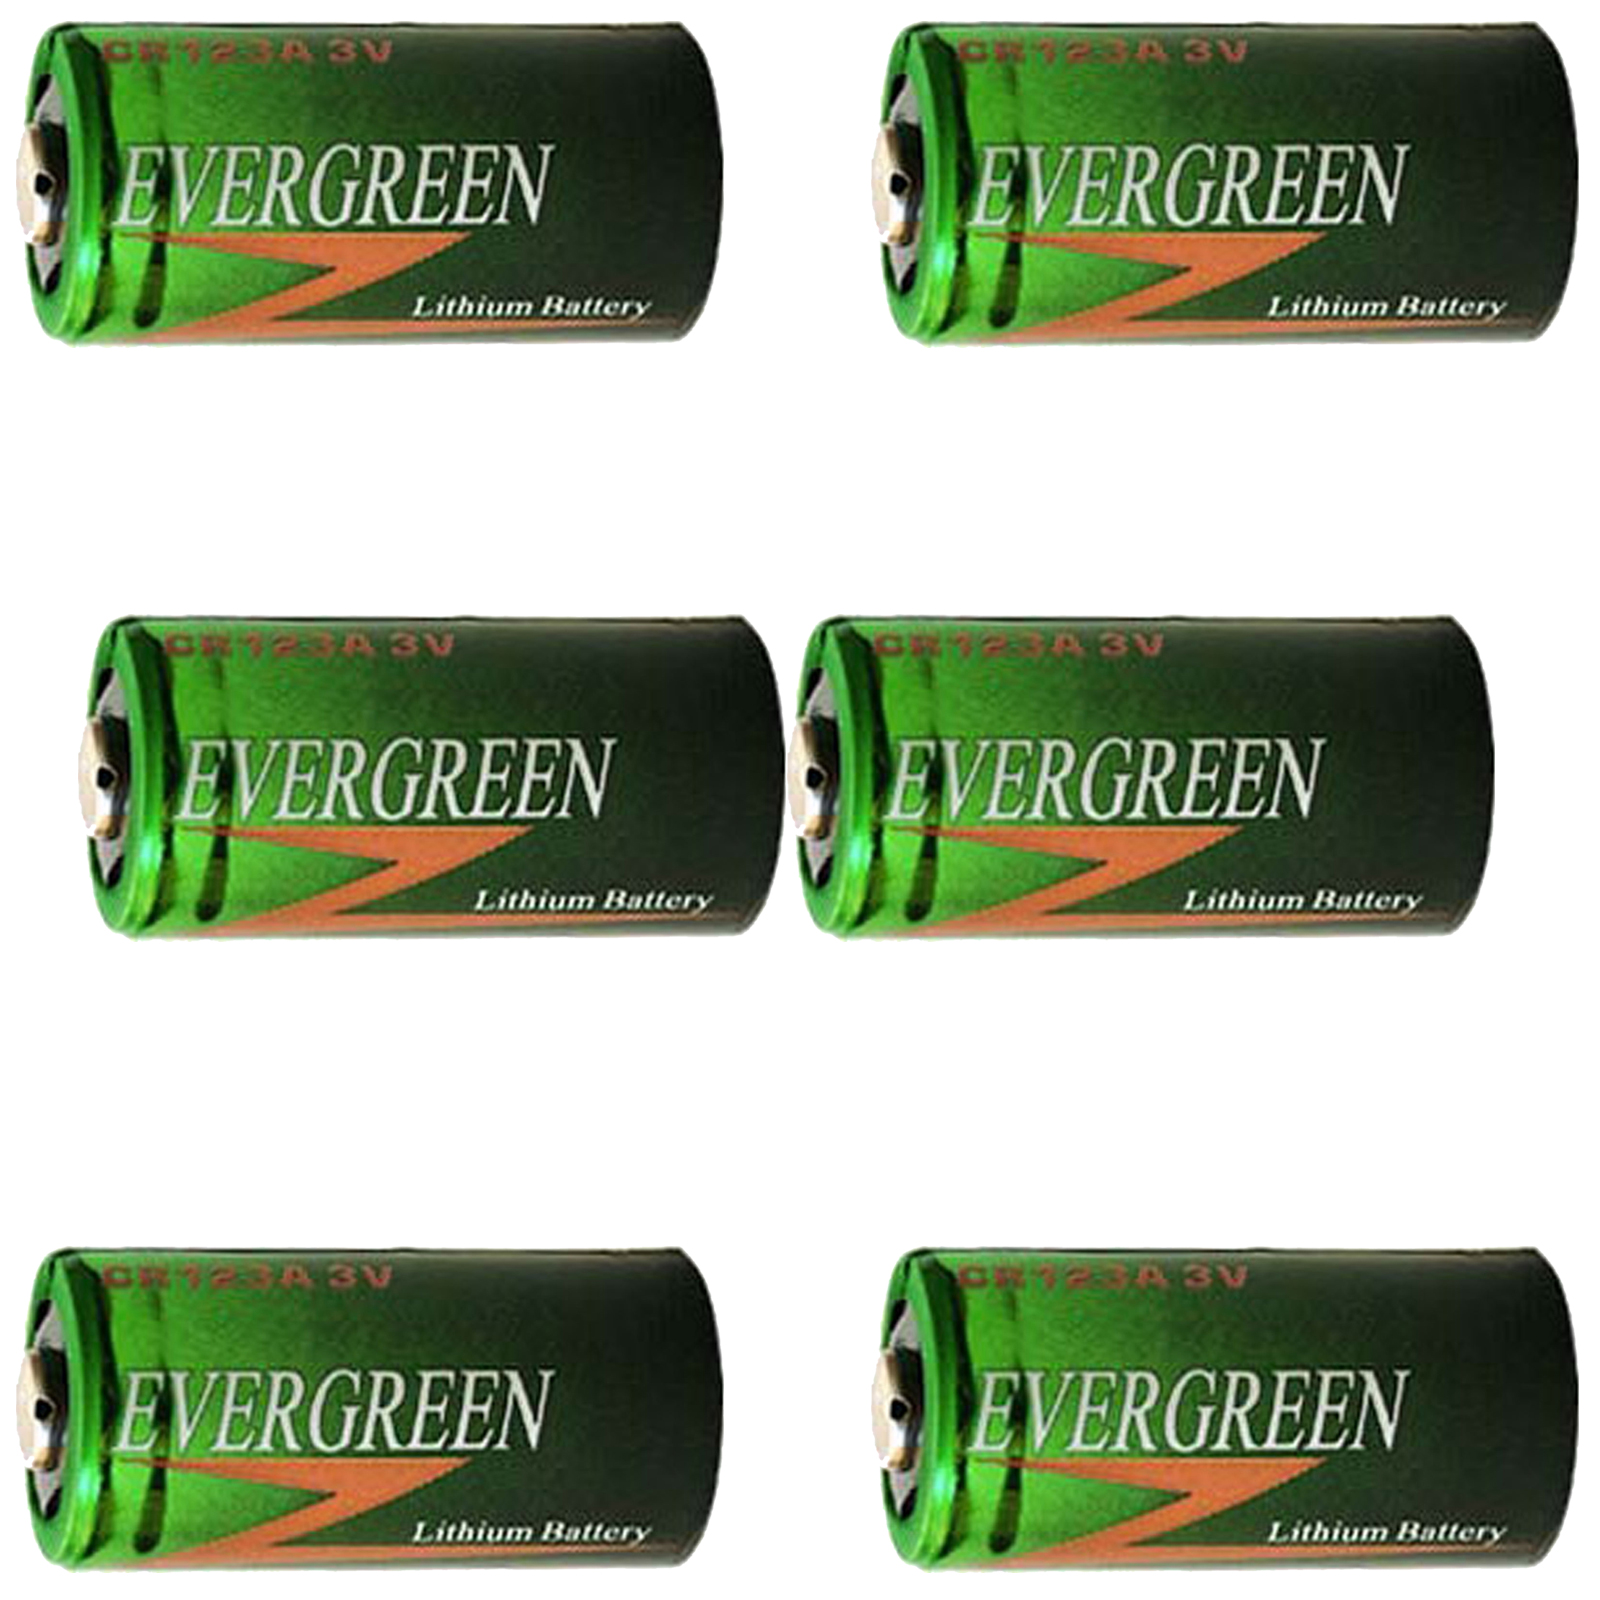 6pcs CR123 2/3A 3V Evergreen Lithium Batteries DL123A2 DL-123  DL-123AB  DLCR123